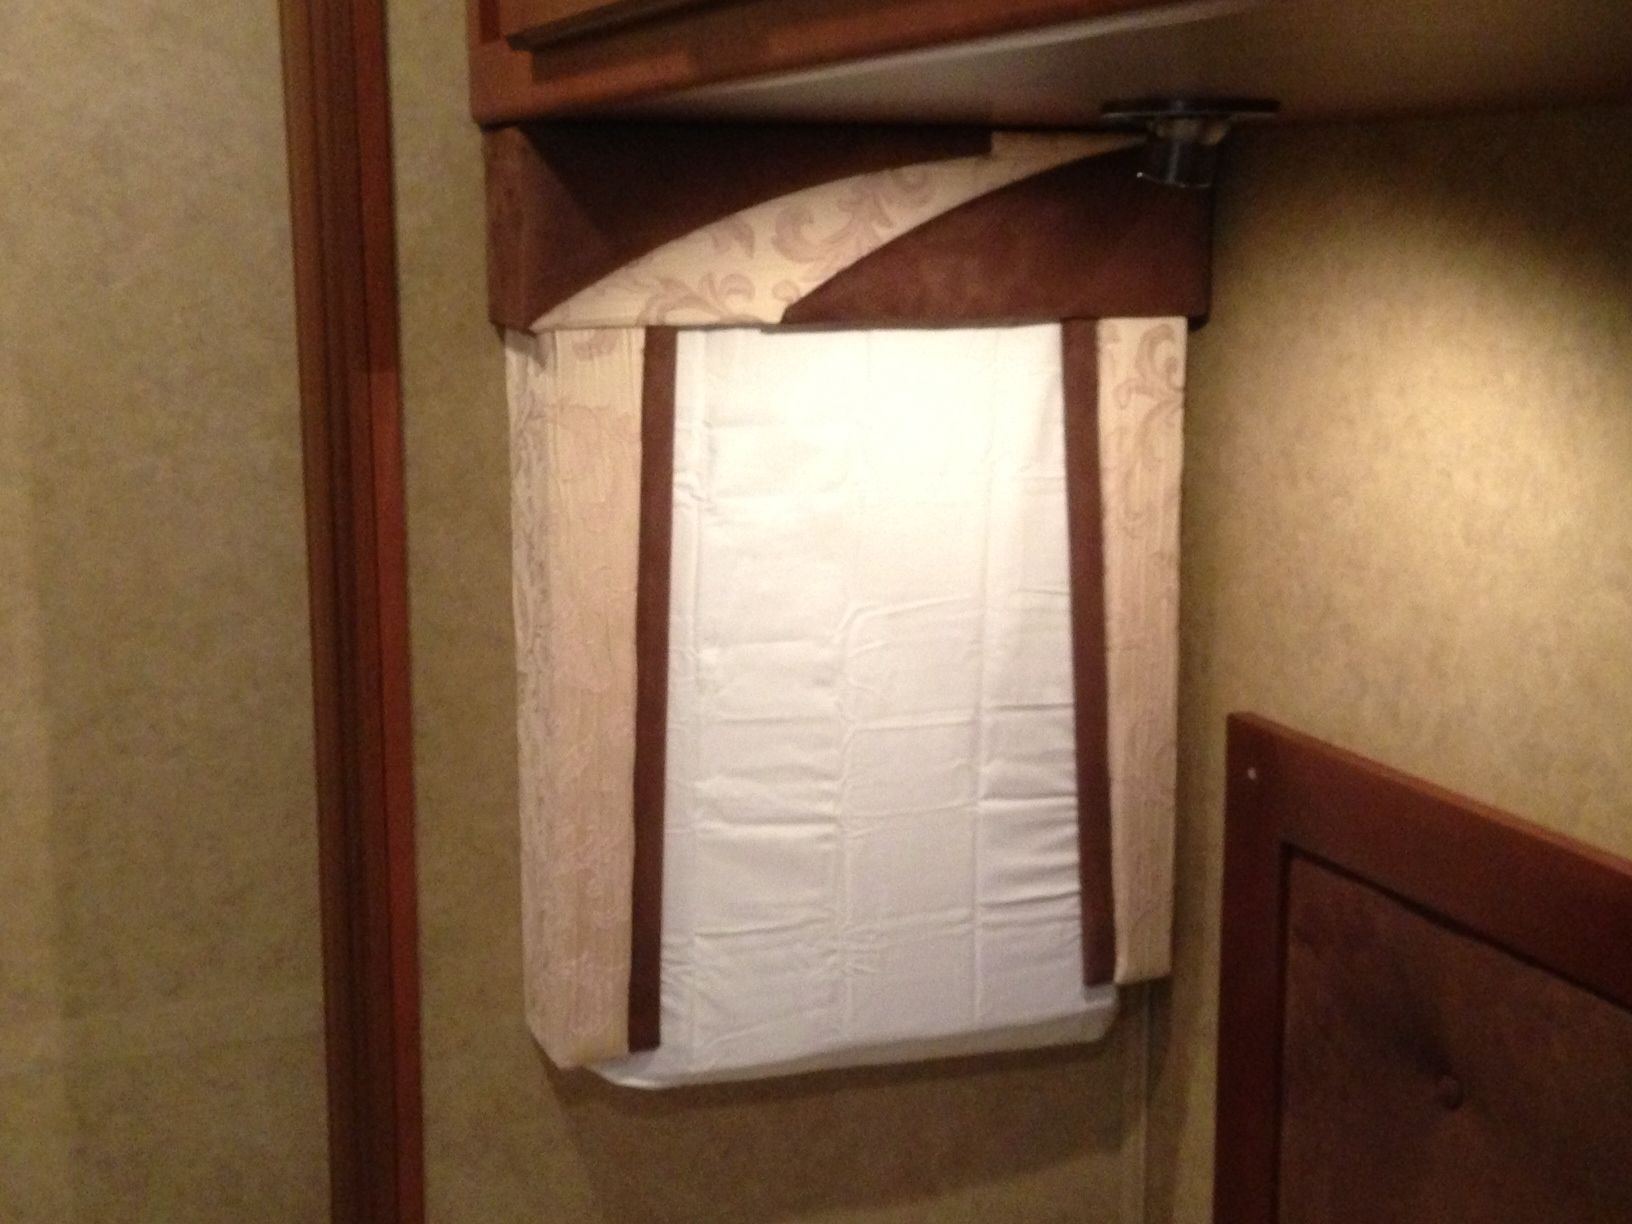 Clever Mod for Cold Weather RV Window Insulation & Clever Mod for Cold Weather RV Window Insulation | Pillow cases ...